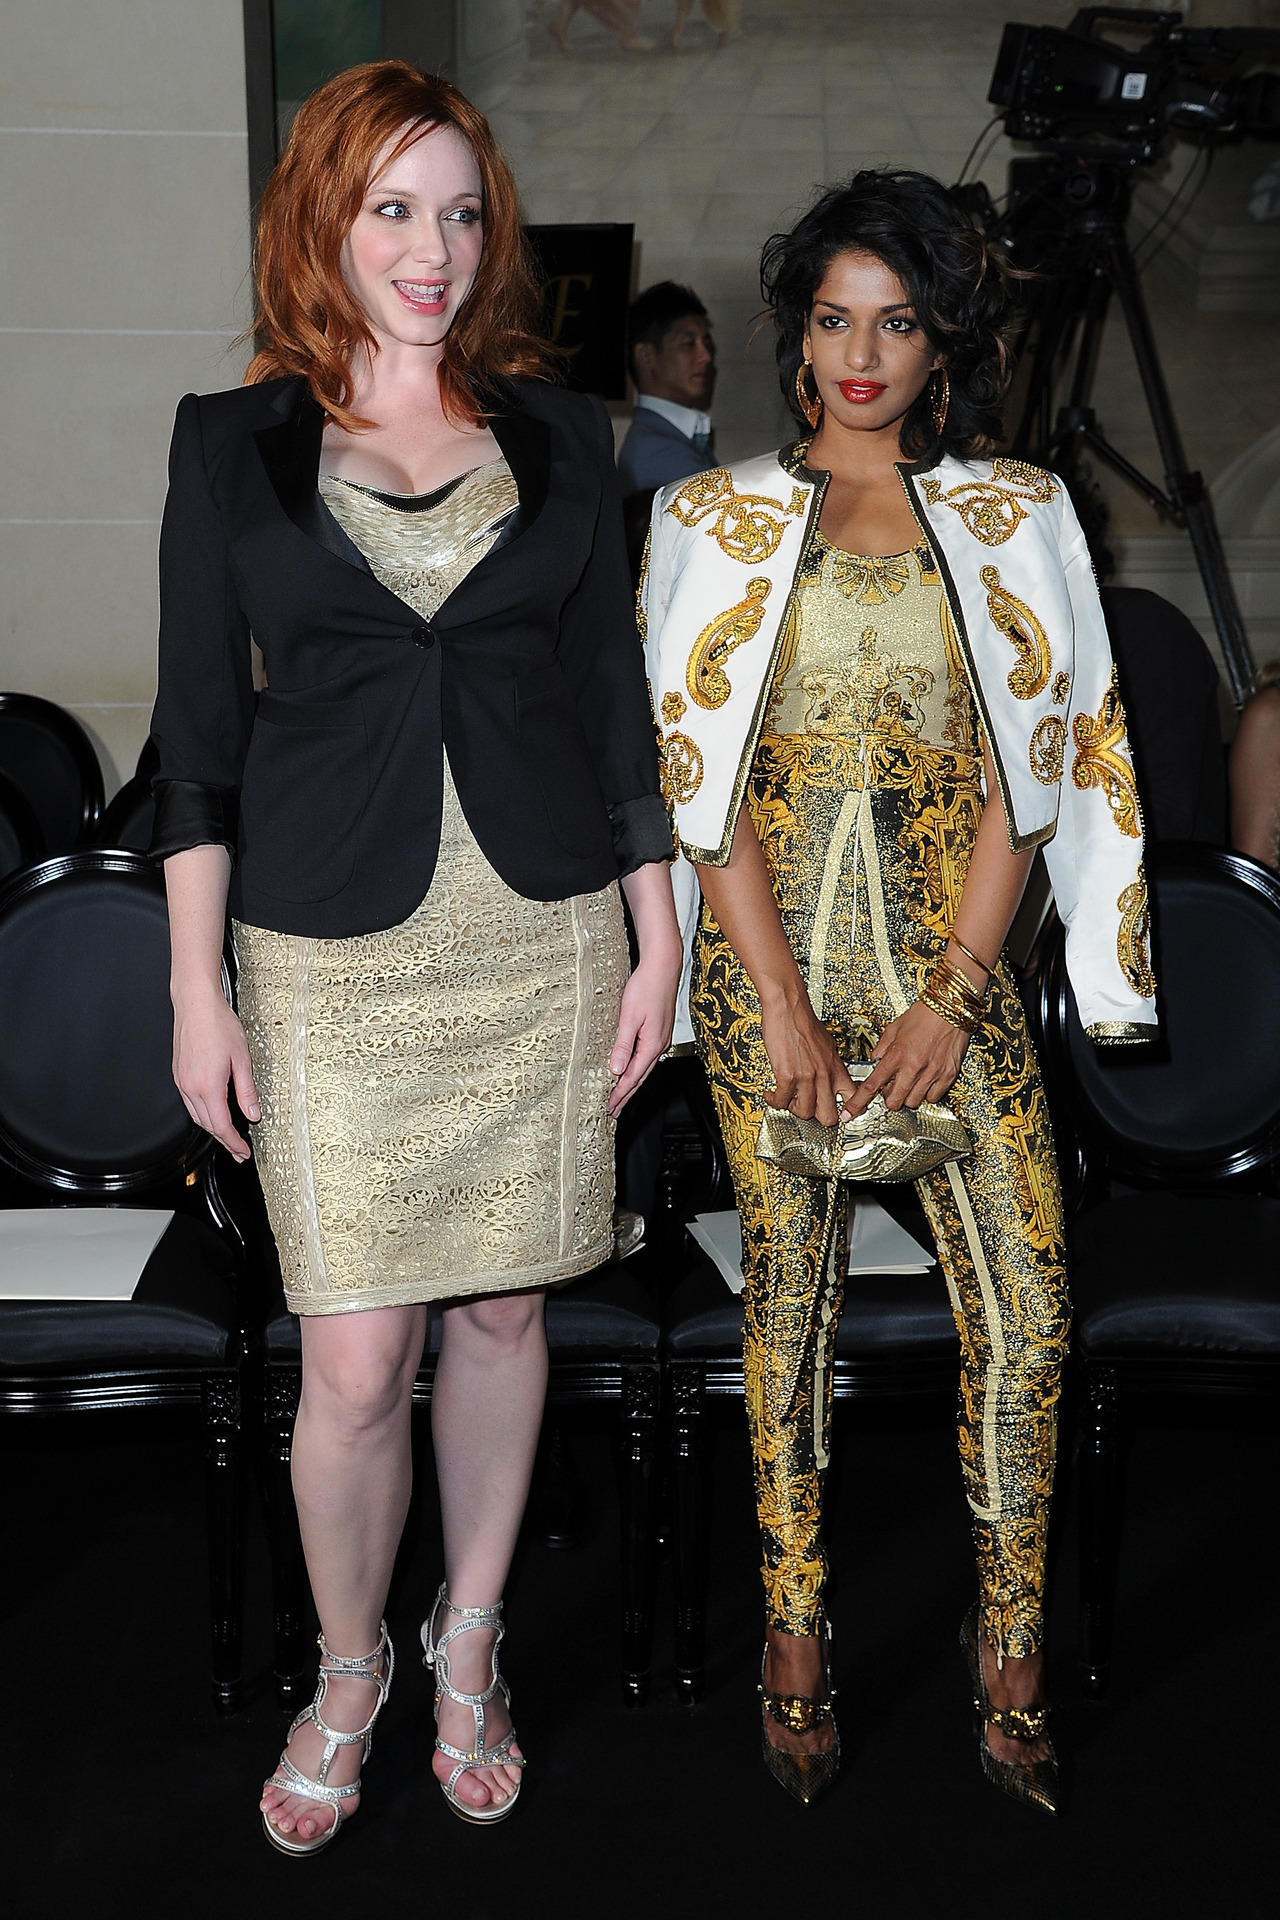 Christina Hendricks and M.I.A. at the Atelier Versace Fall/Winter 2012 show in Paris, July 1st